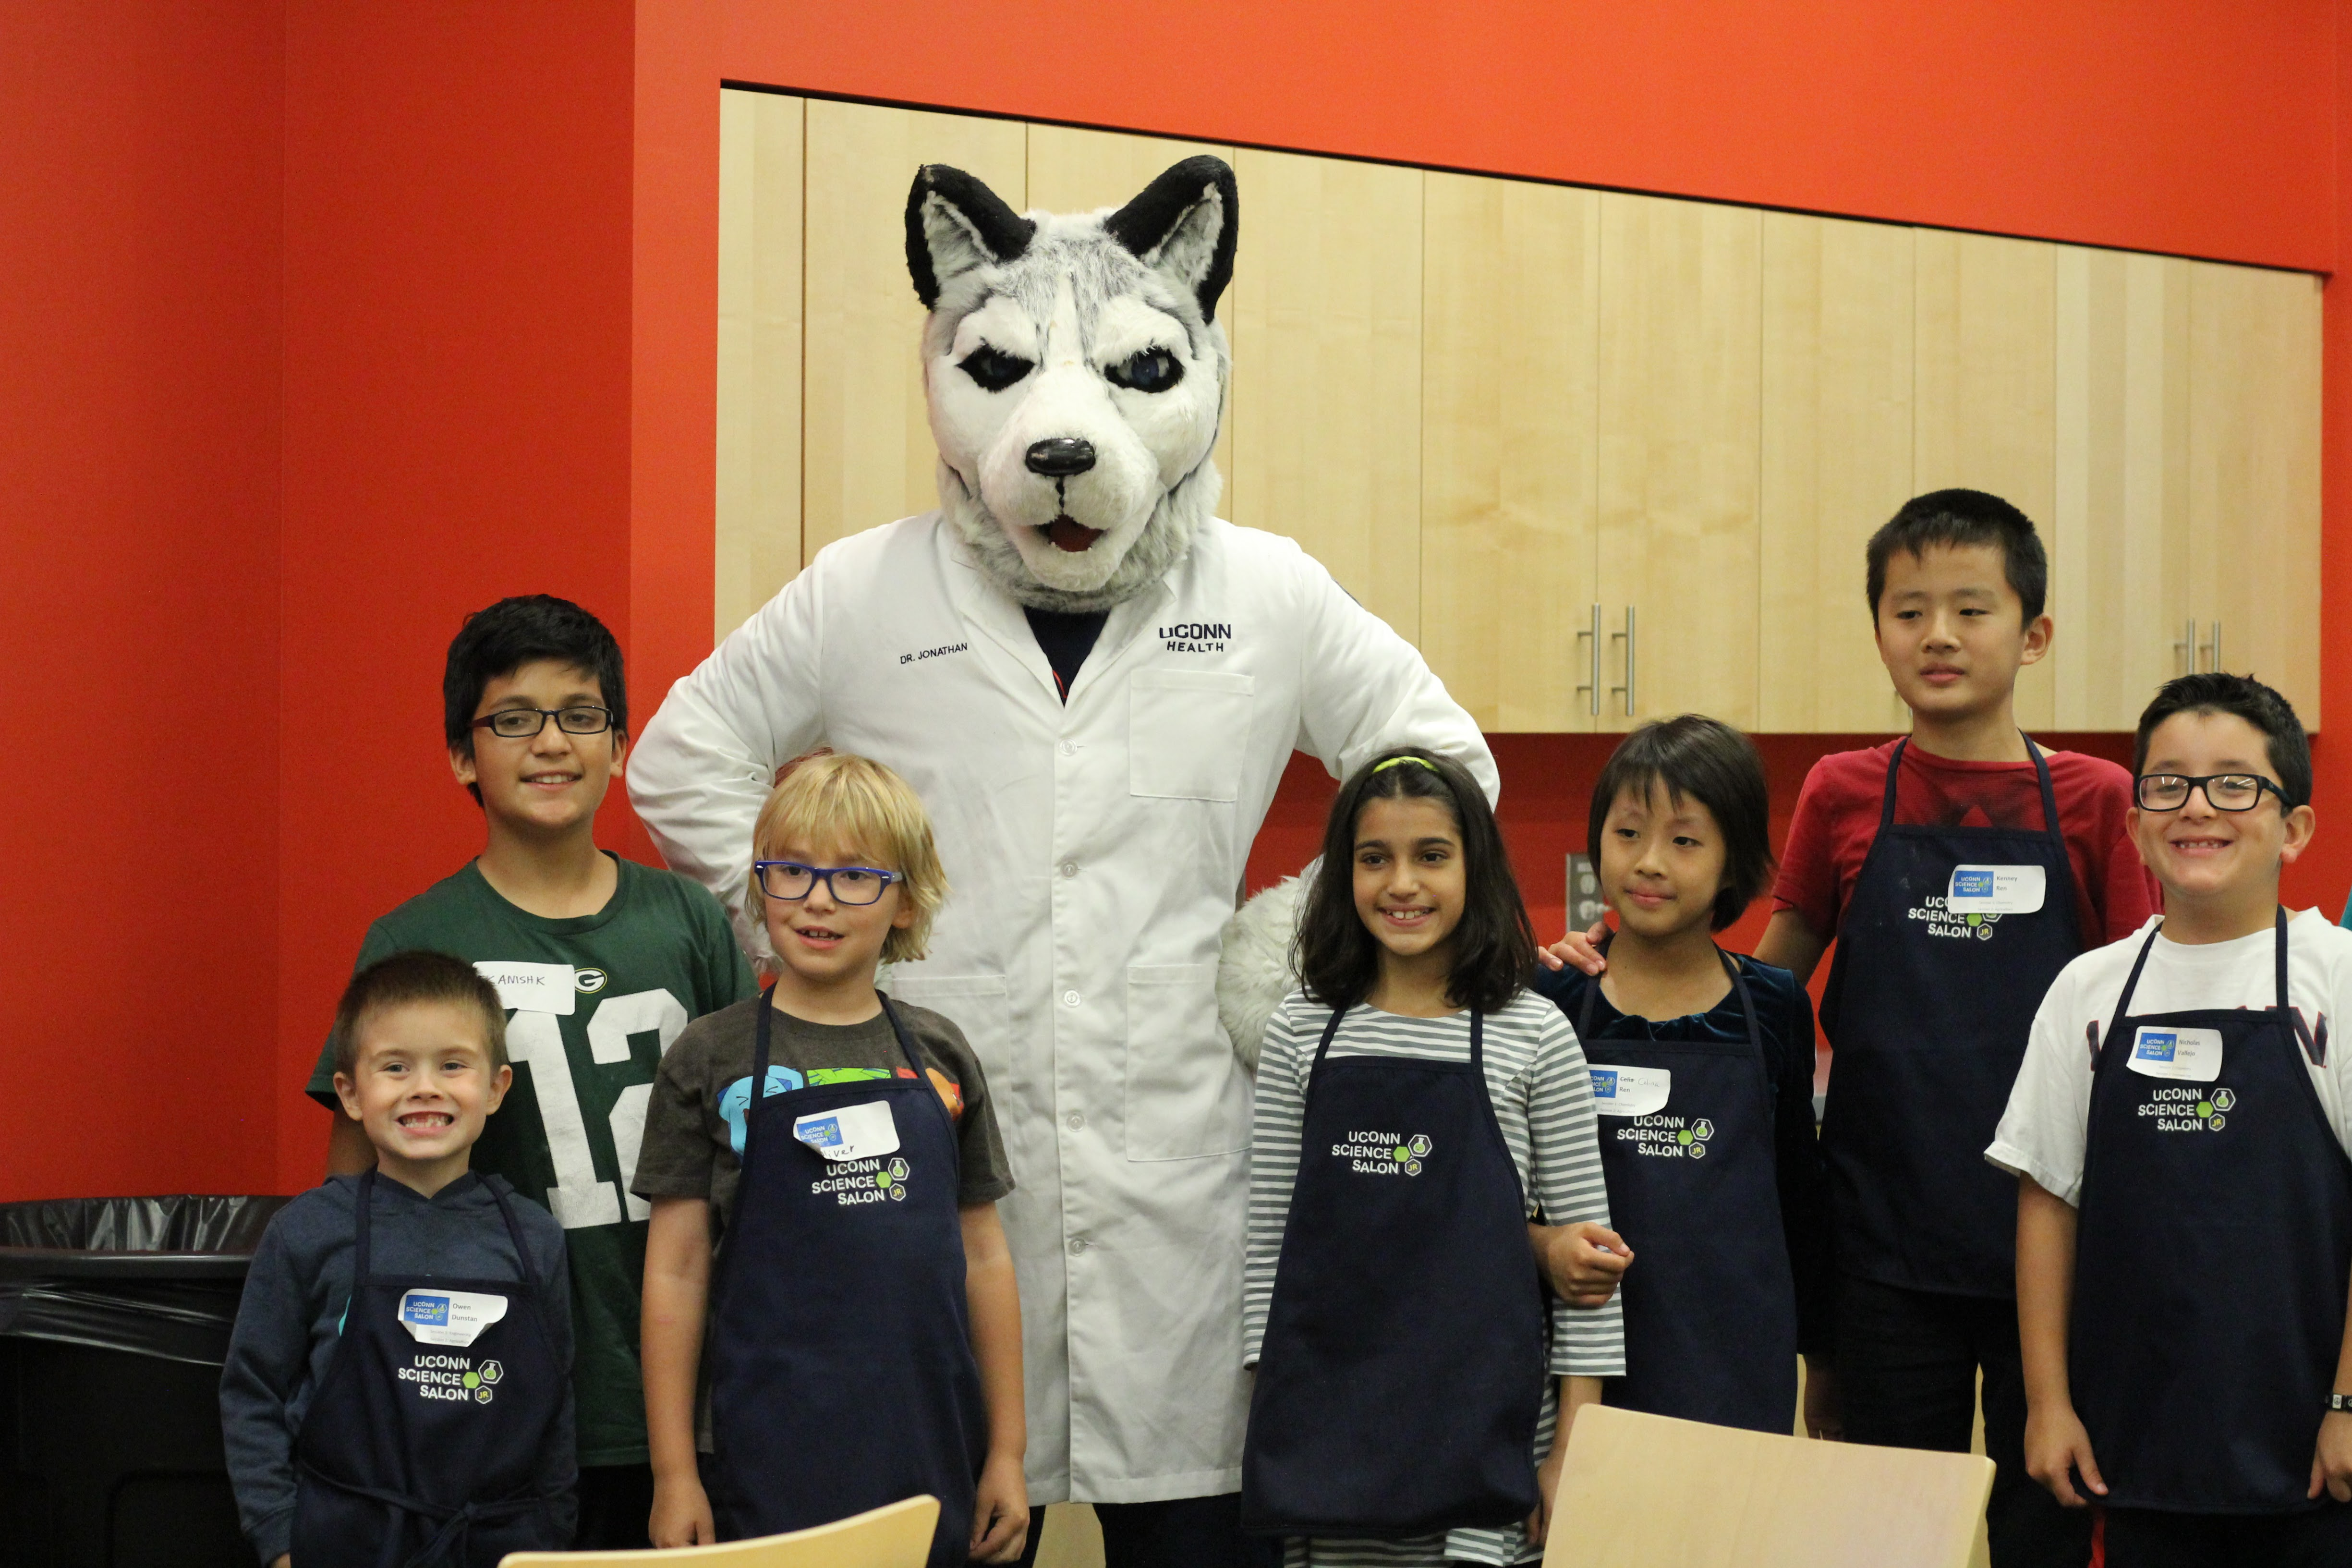 Jonathan, the husky (mascot), takes a photo with Science Salon Jr. children